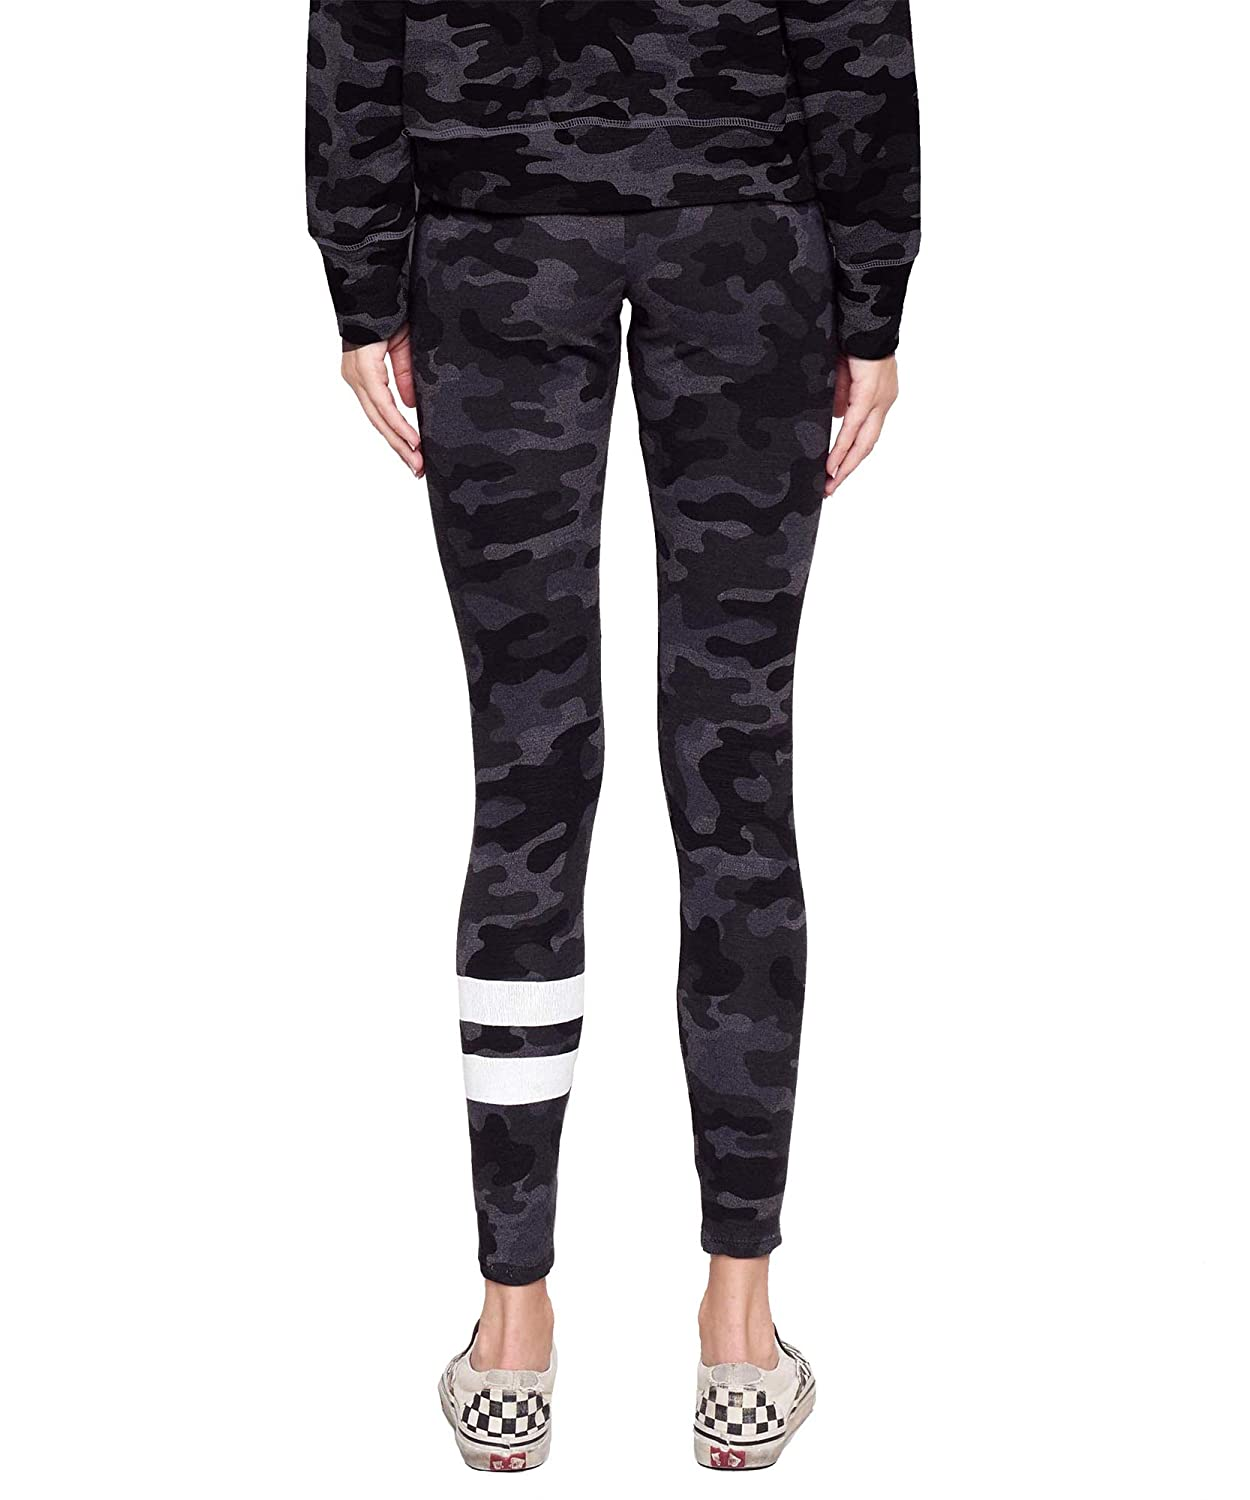 7bf4d09641b81 Amazon.com: SUNDRY Clothing Women's Stripe Camo Yoga Pant, Charcoal  (Small): Clothing